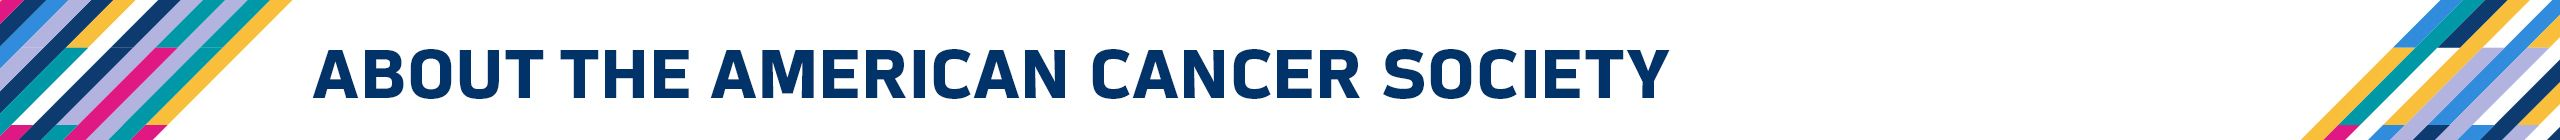 CrucialCatch_SectionHeader_About the American Cancer Society